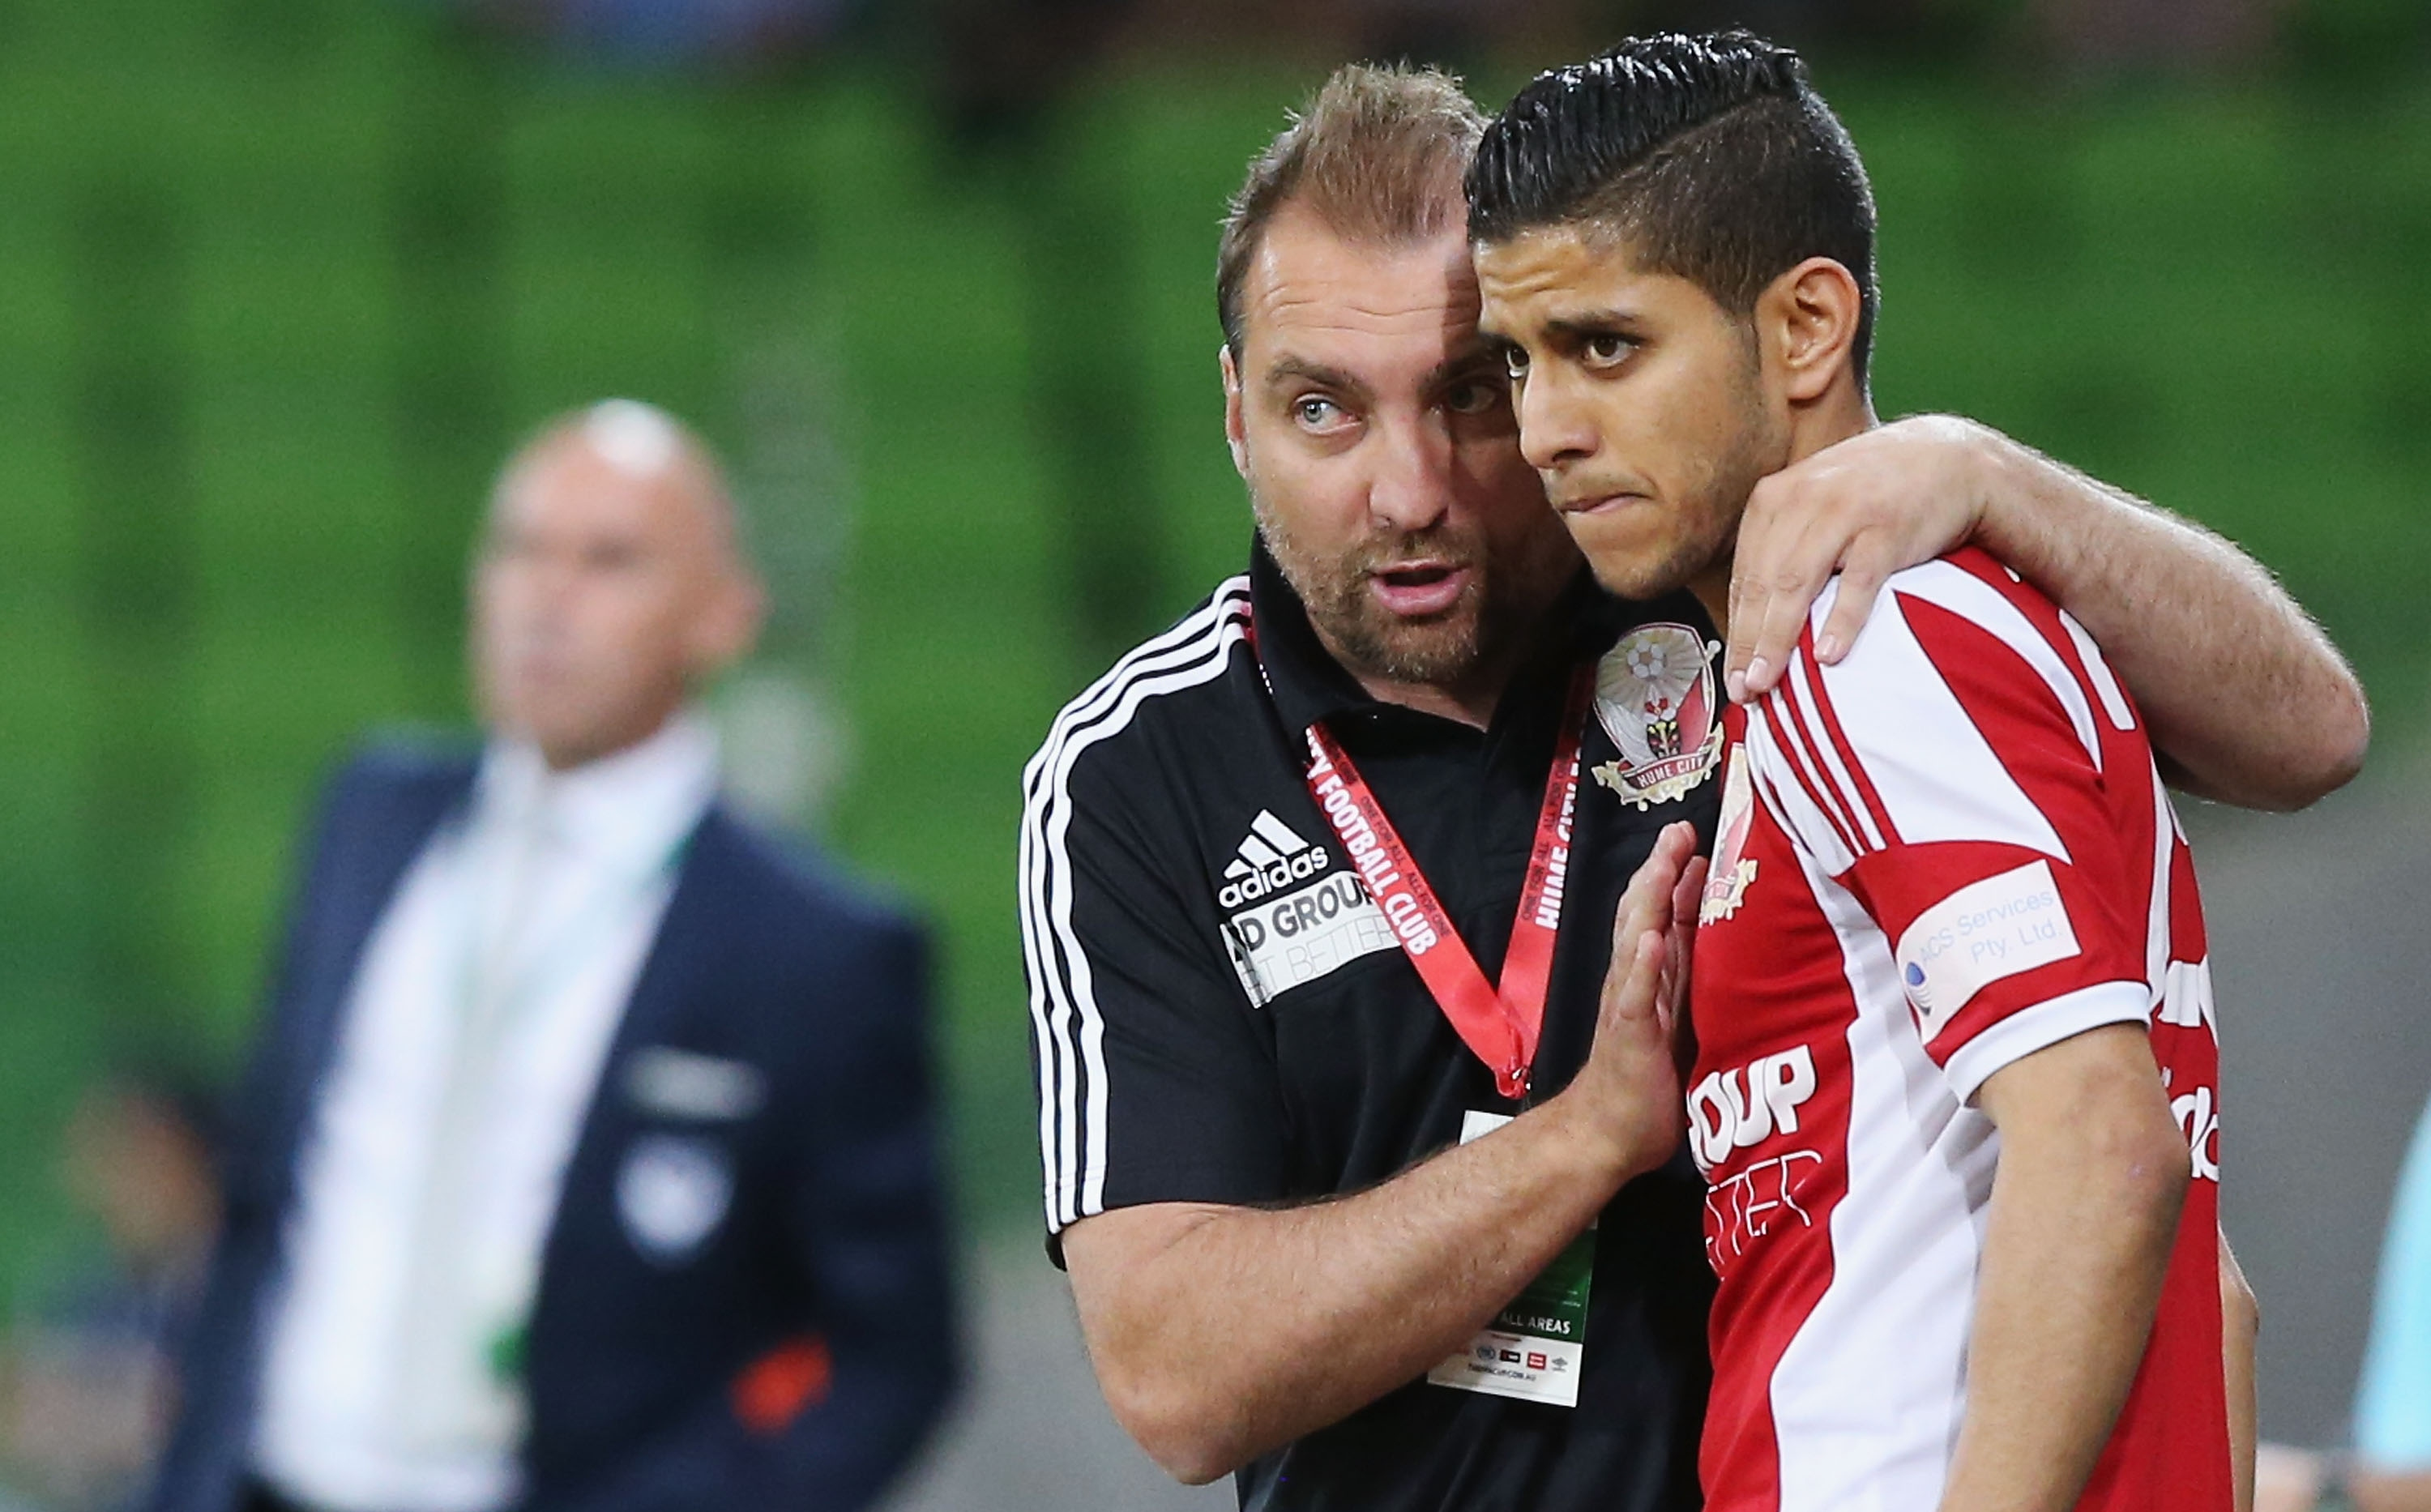 Lou Acevski gives instructions to Souheil Azagane during the FFA Cup Semi Final match between Hume City and Melbourne Victory at AAMI Park on October 28, 2015